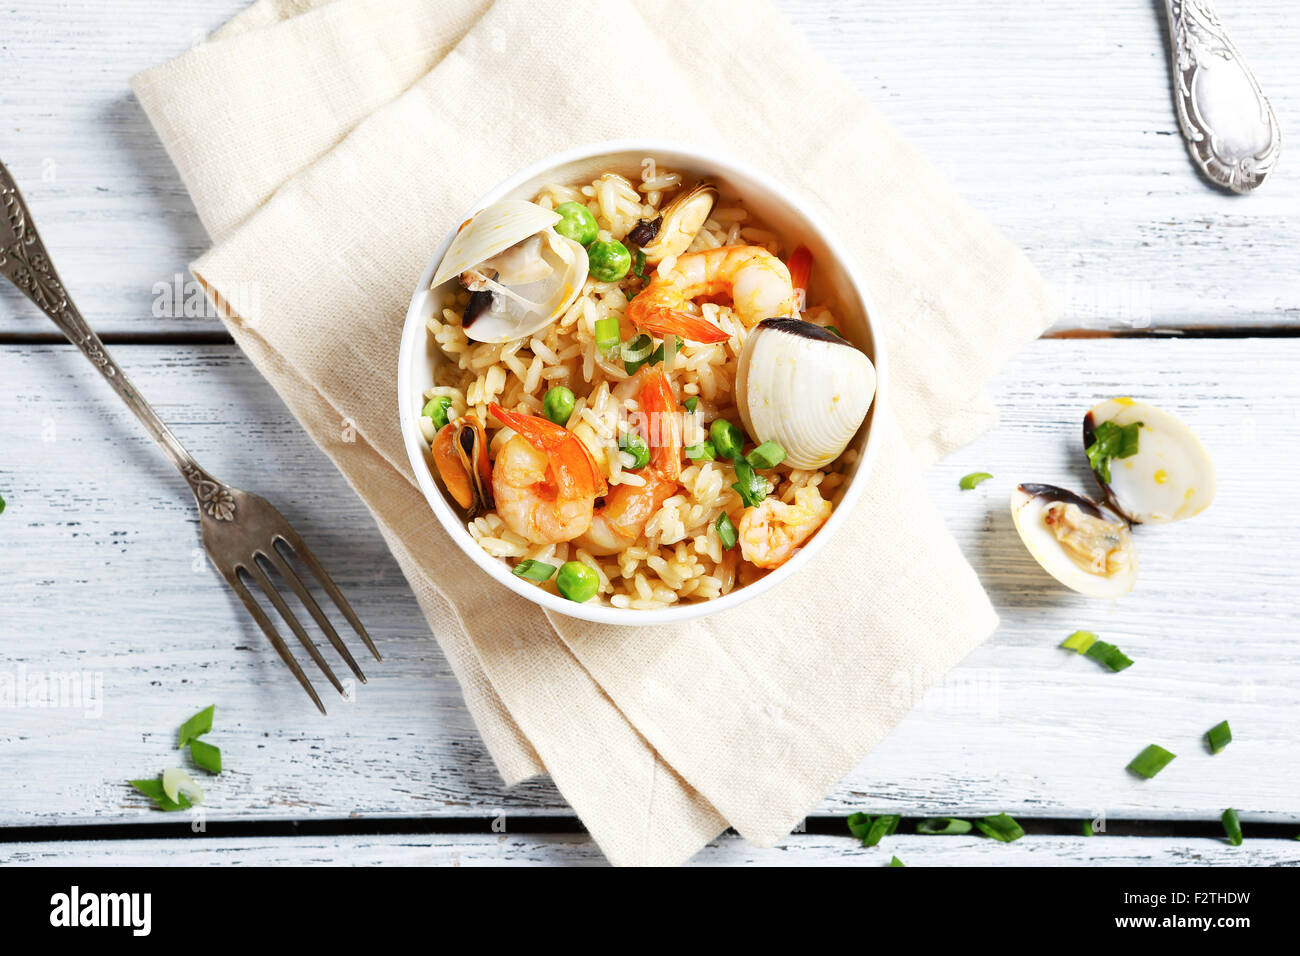 Nourishing rice with shrimp and mussels, food - Stock Image